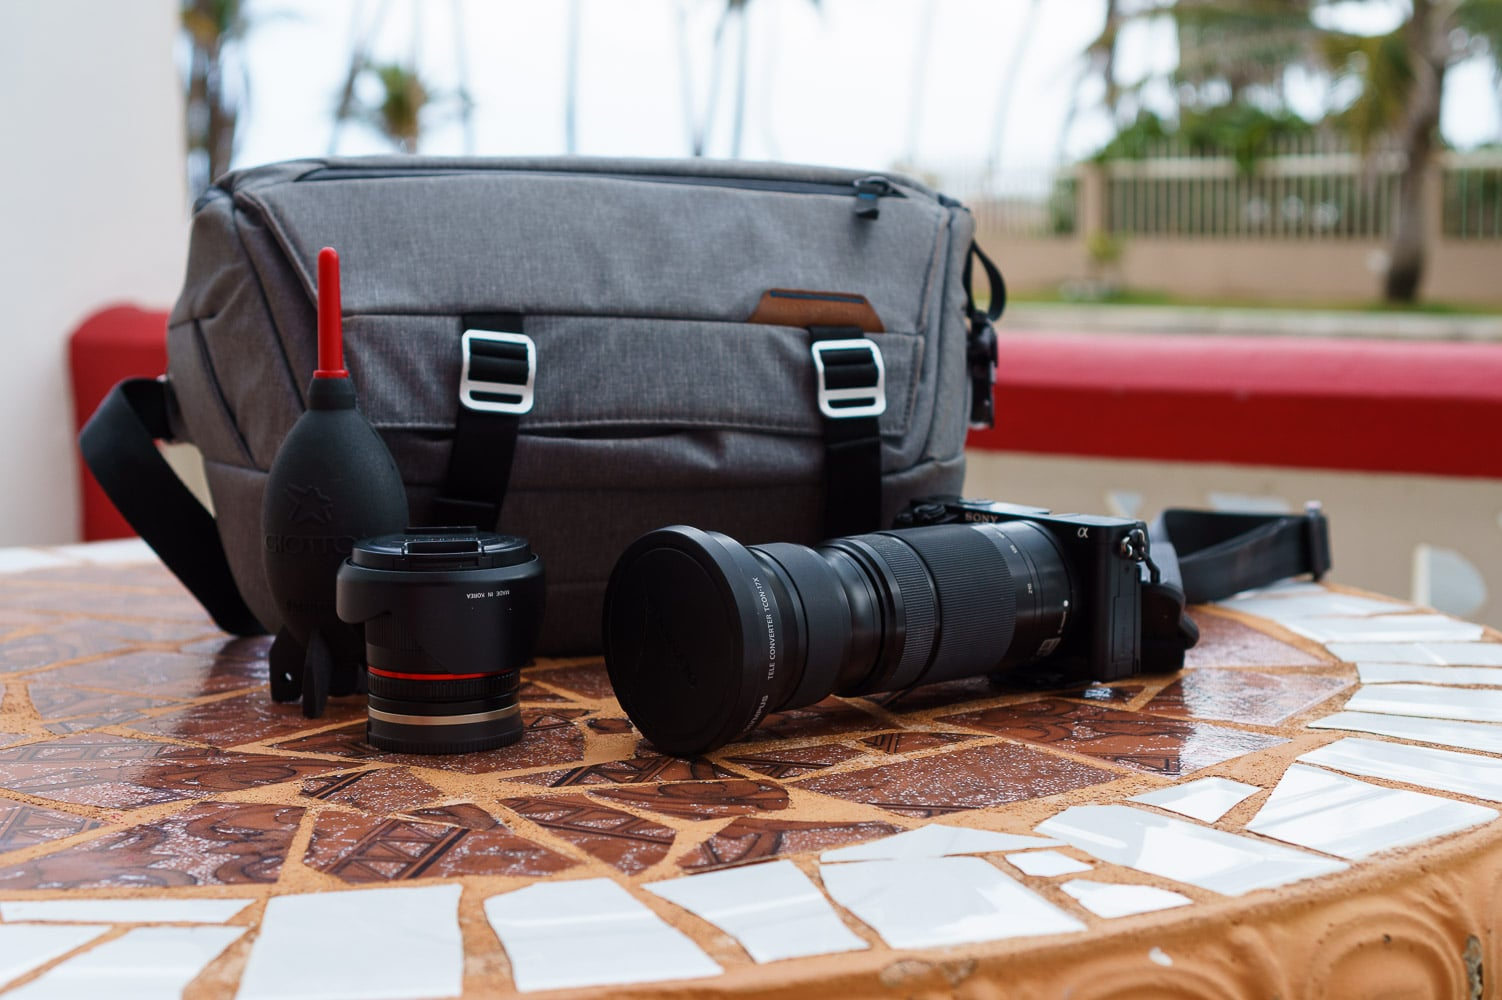 Peak Design Everyday Sling - The Best Mirrorless Camera Bag for Travel